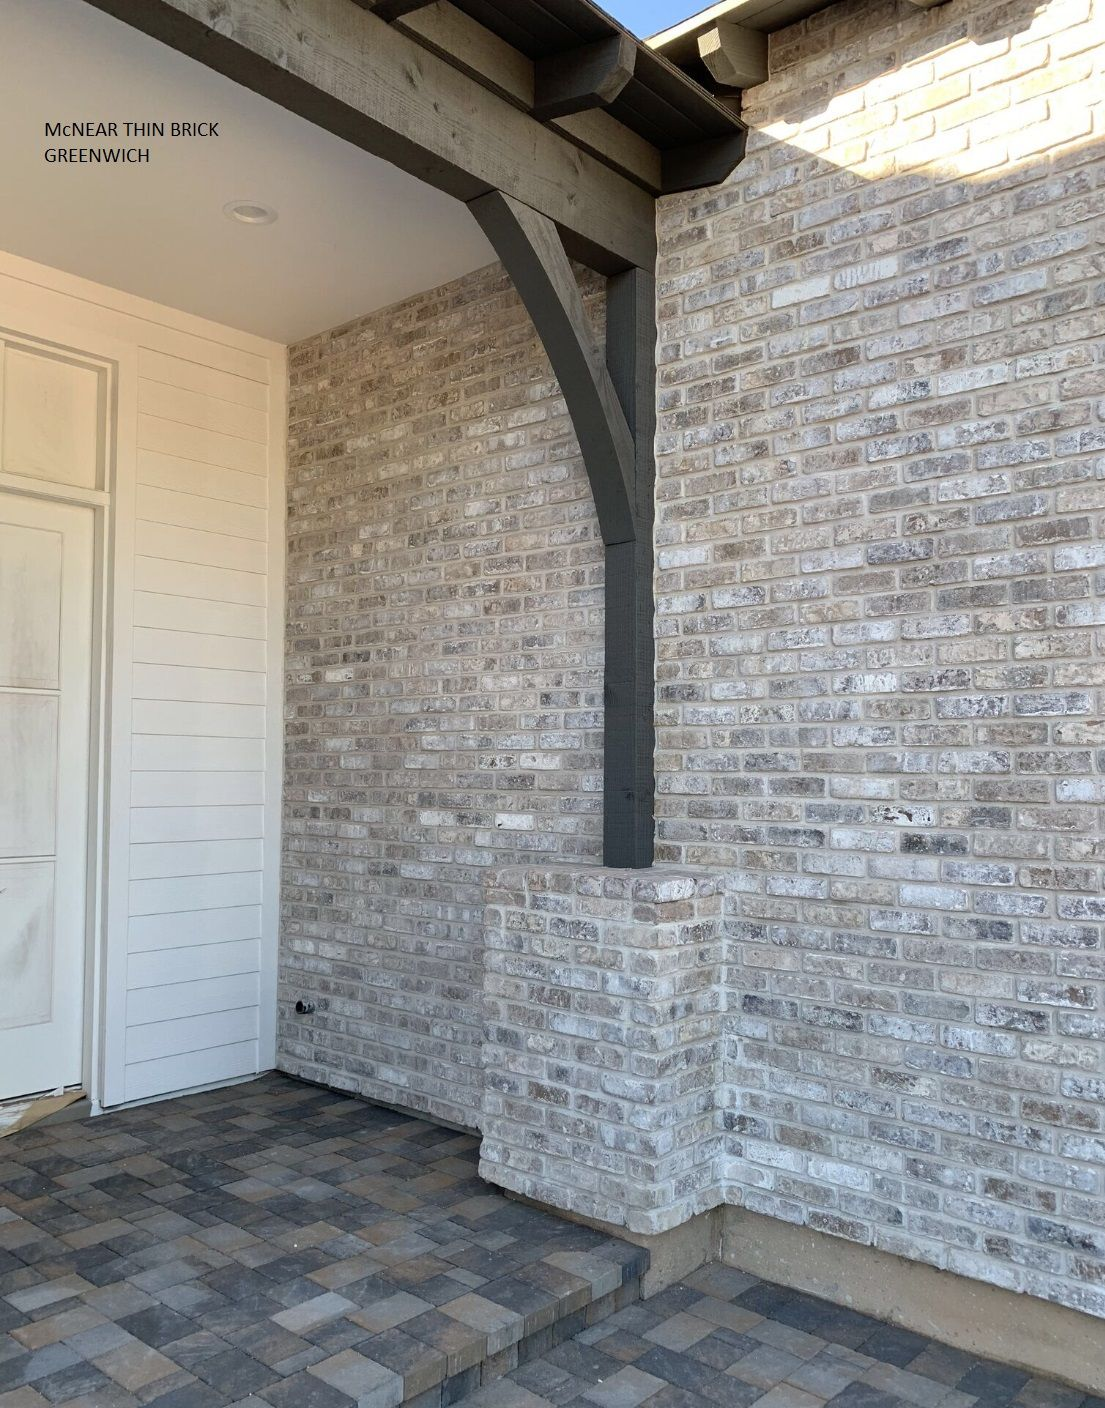 Exposed Brick Look Using Thin Brick Veneer Color Greenwich From Mcnear Brick Exposedbrick Thinbr Brick Exterior House Modern Brick House Grey Brick Houses